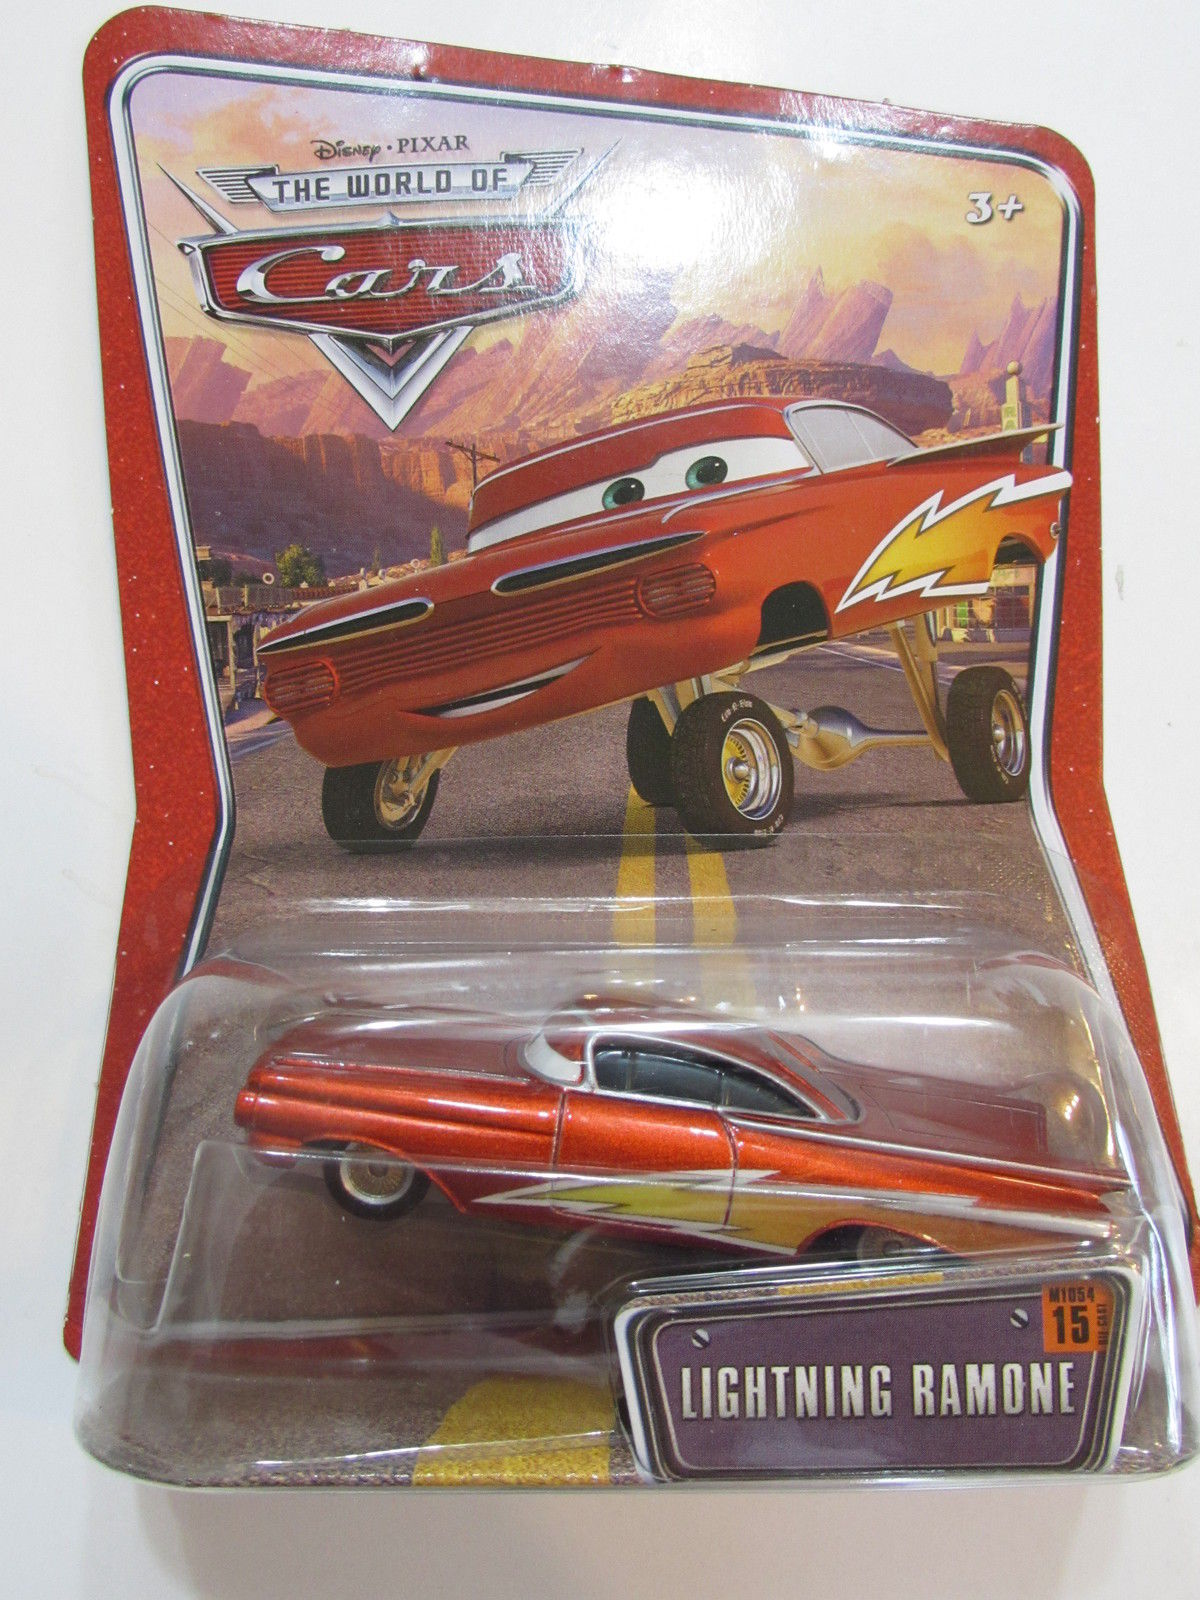 DISNEY PIXAR CARS LIGHTNING RAMONE #15 - DESERT CARD